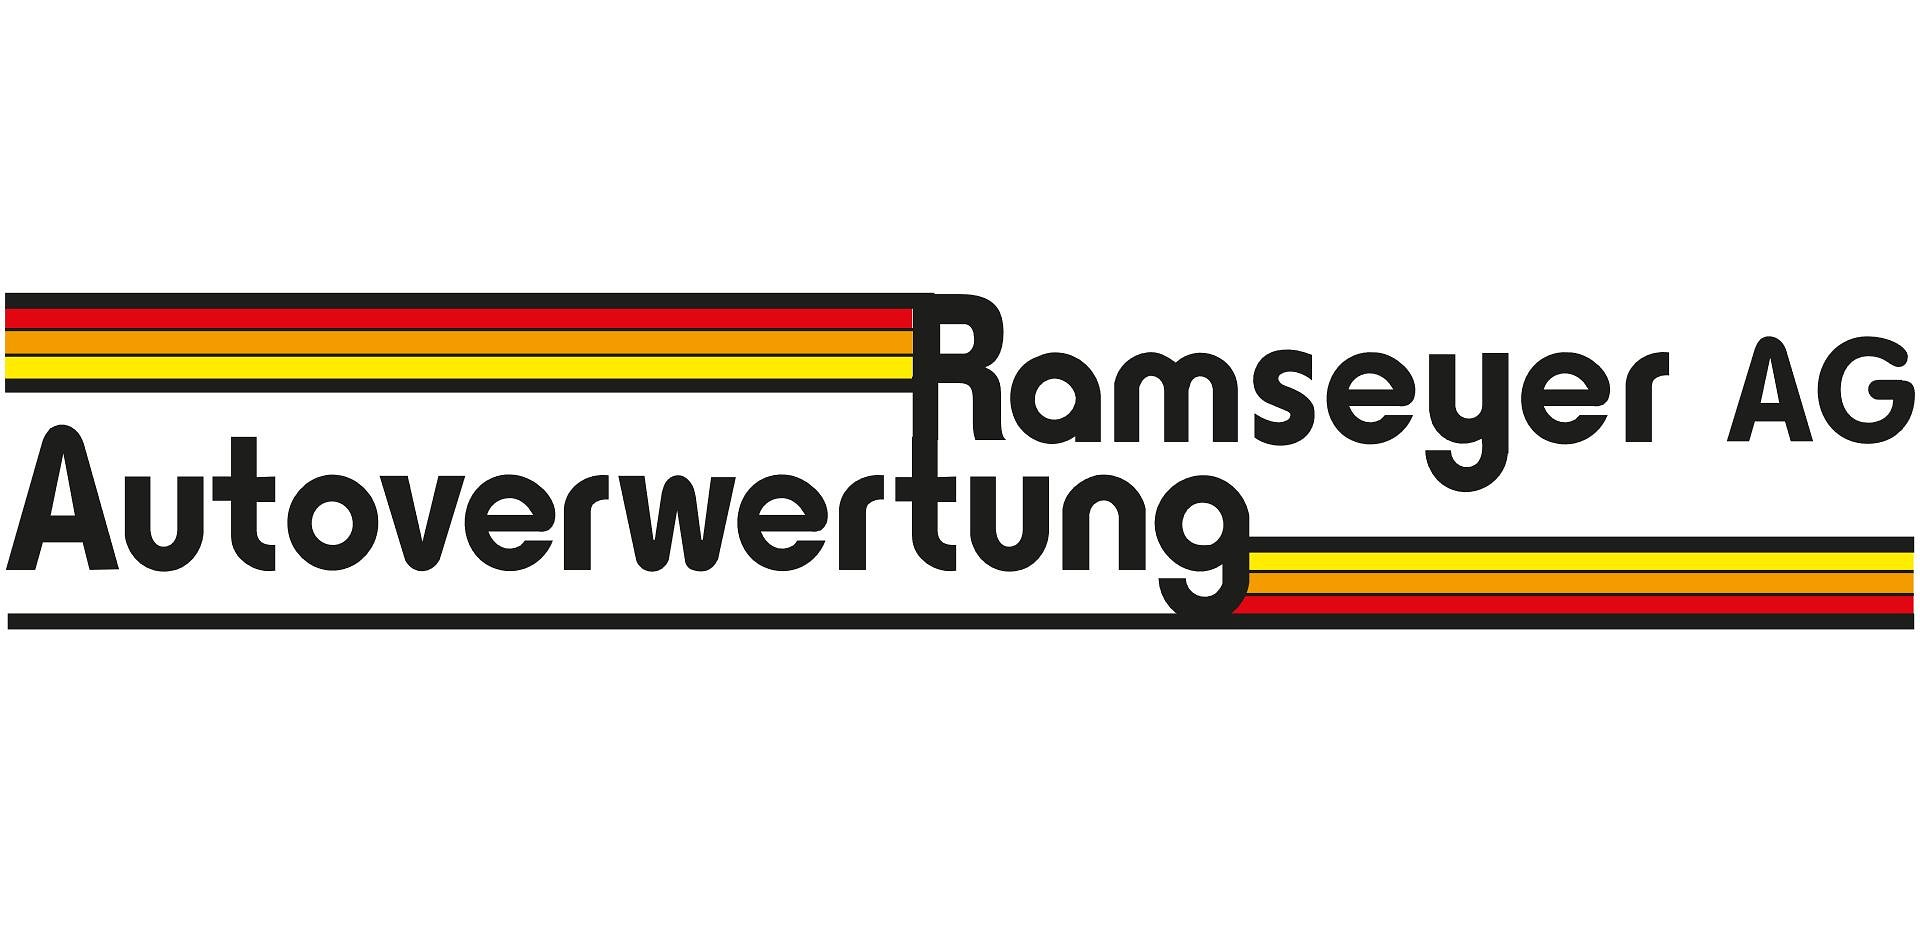 Ramseyer AG Autoverwertung